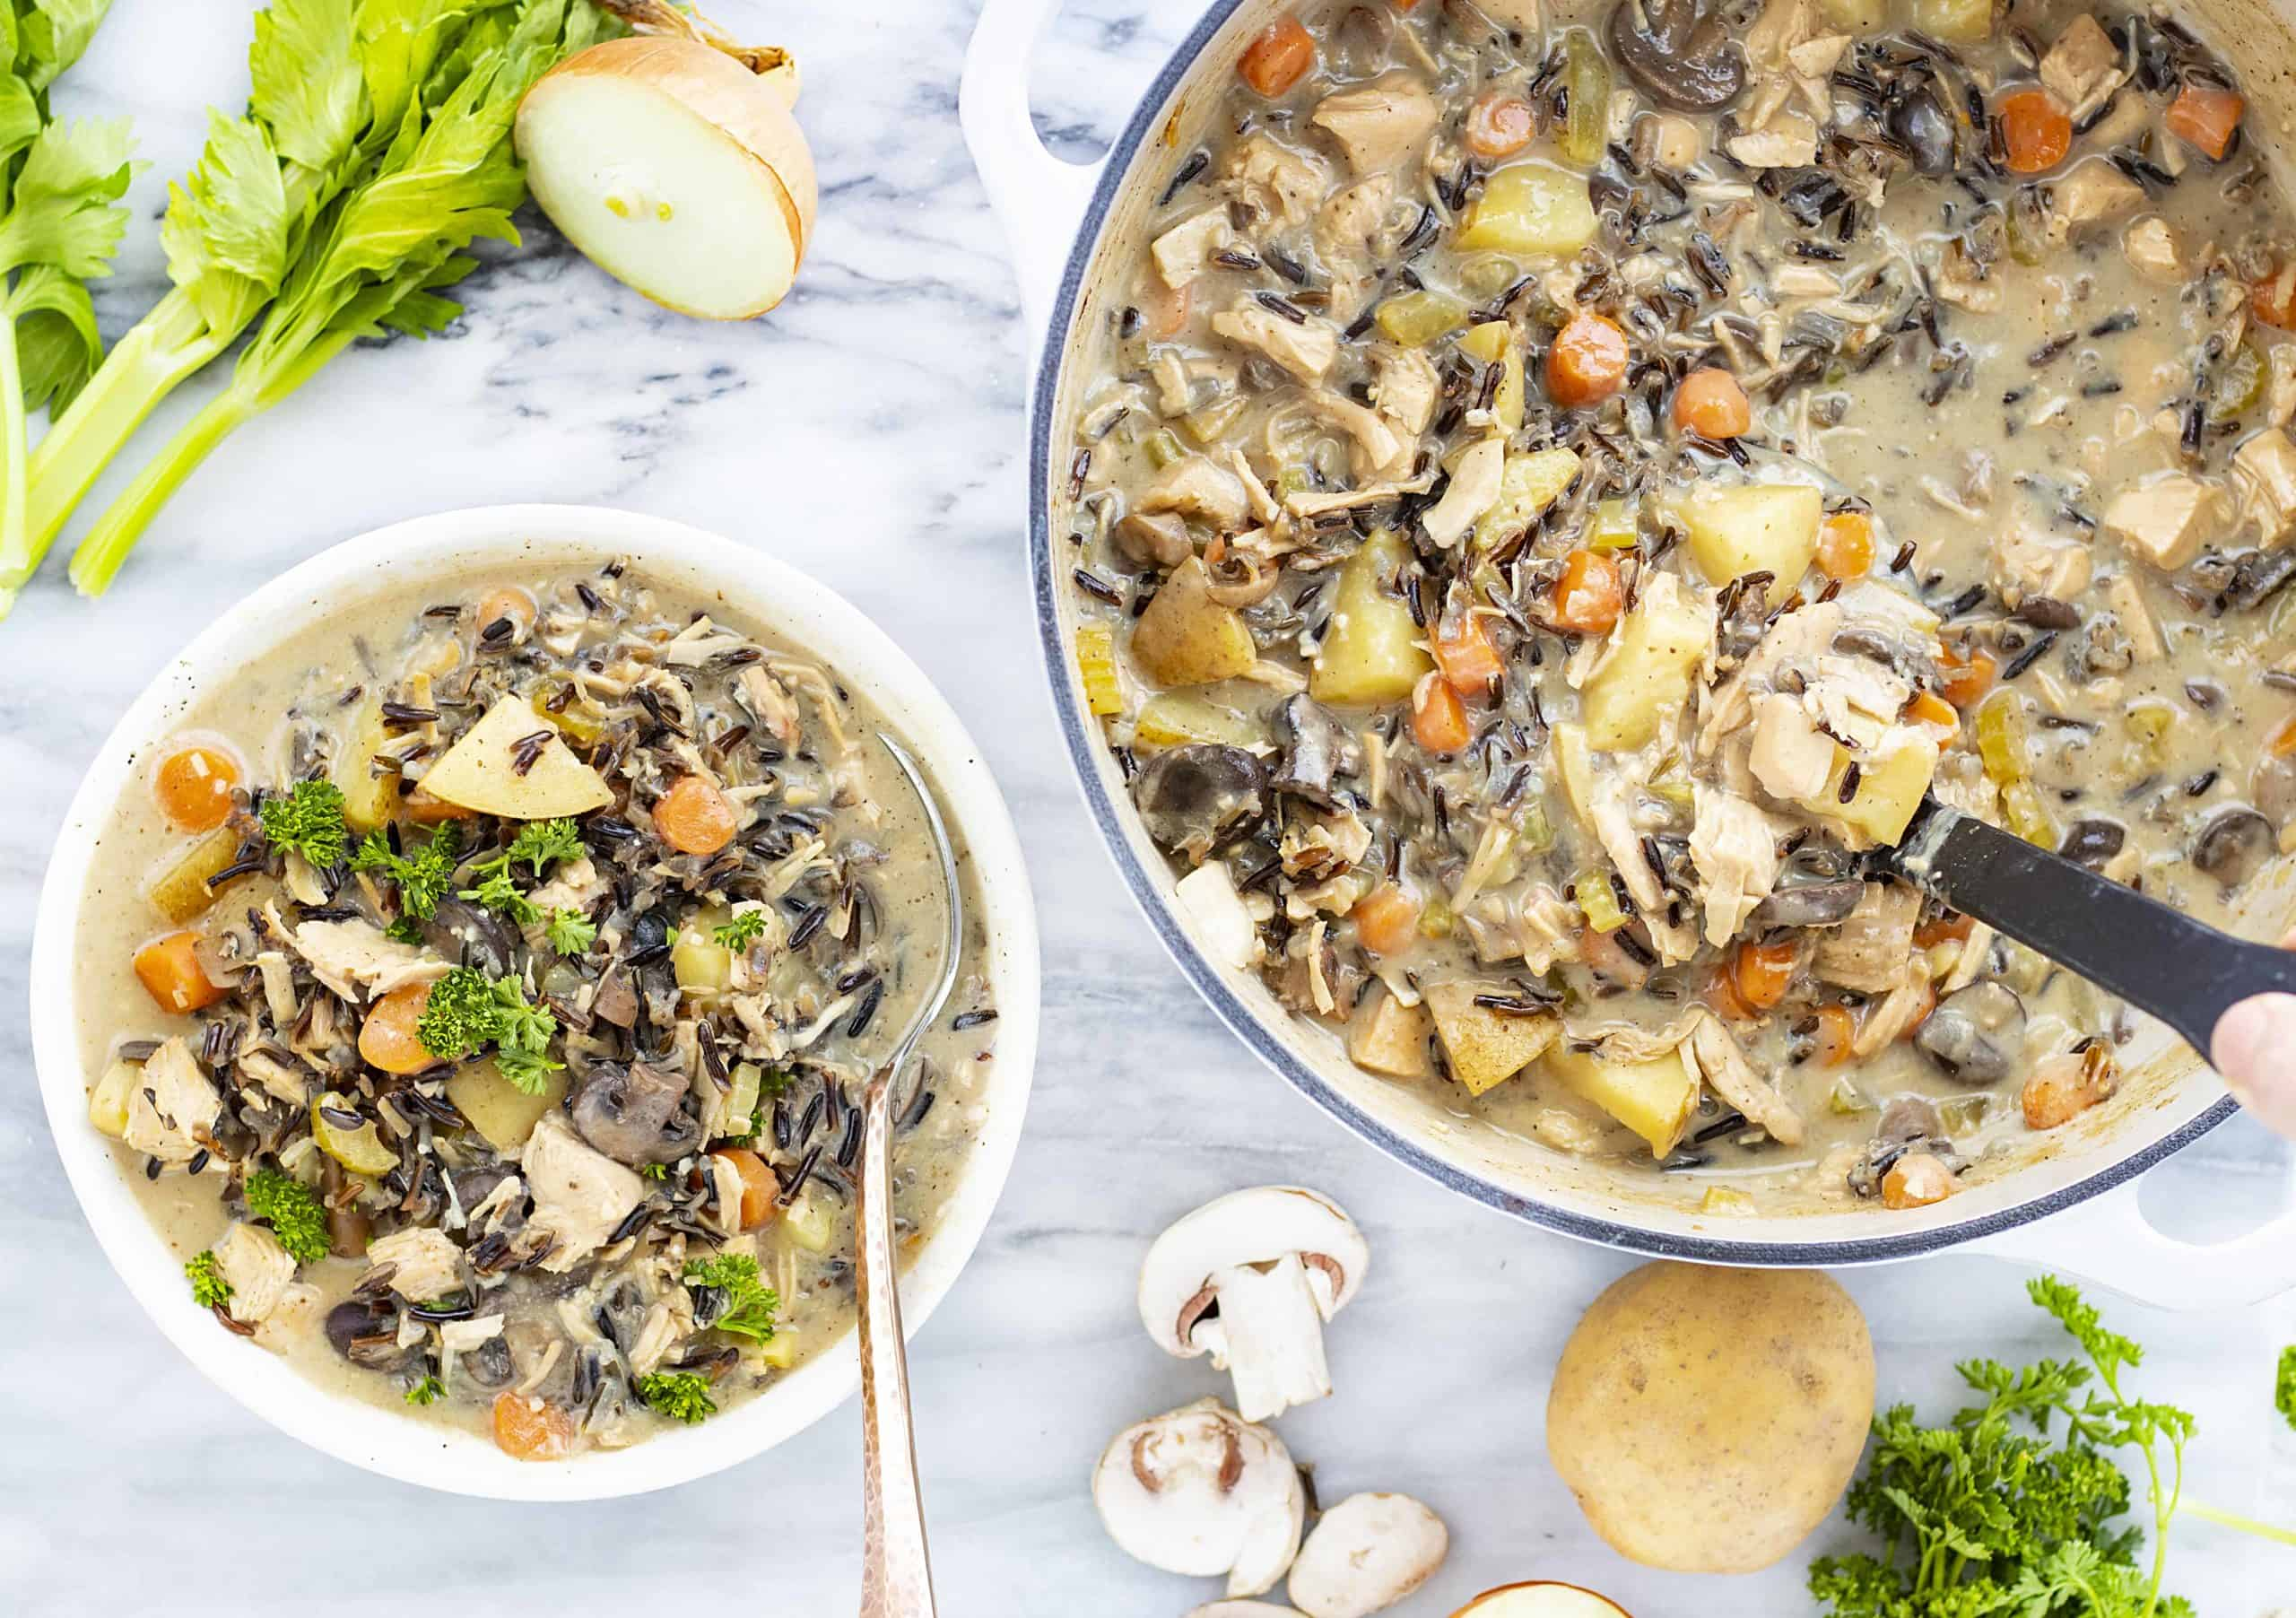 Comfort food - chicken wild rice soup